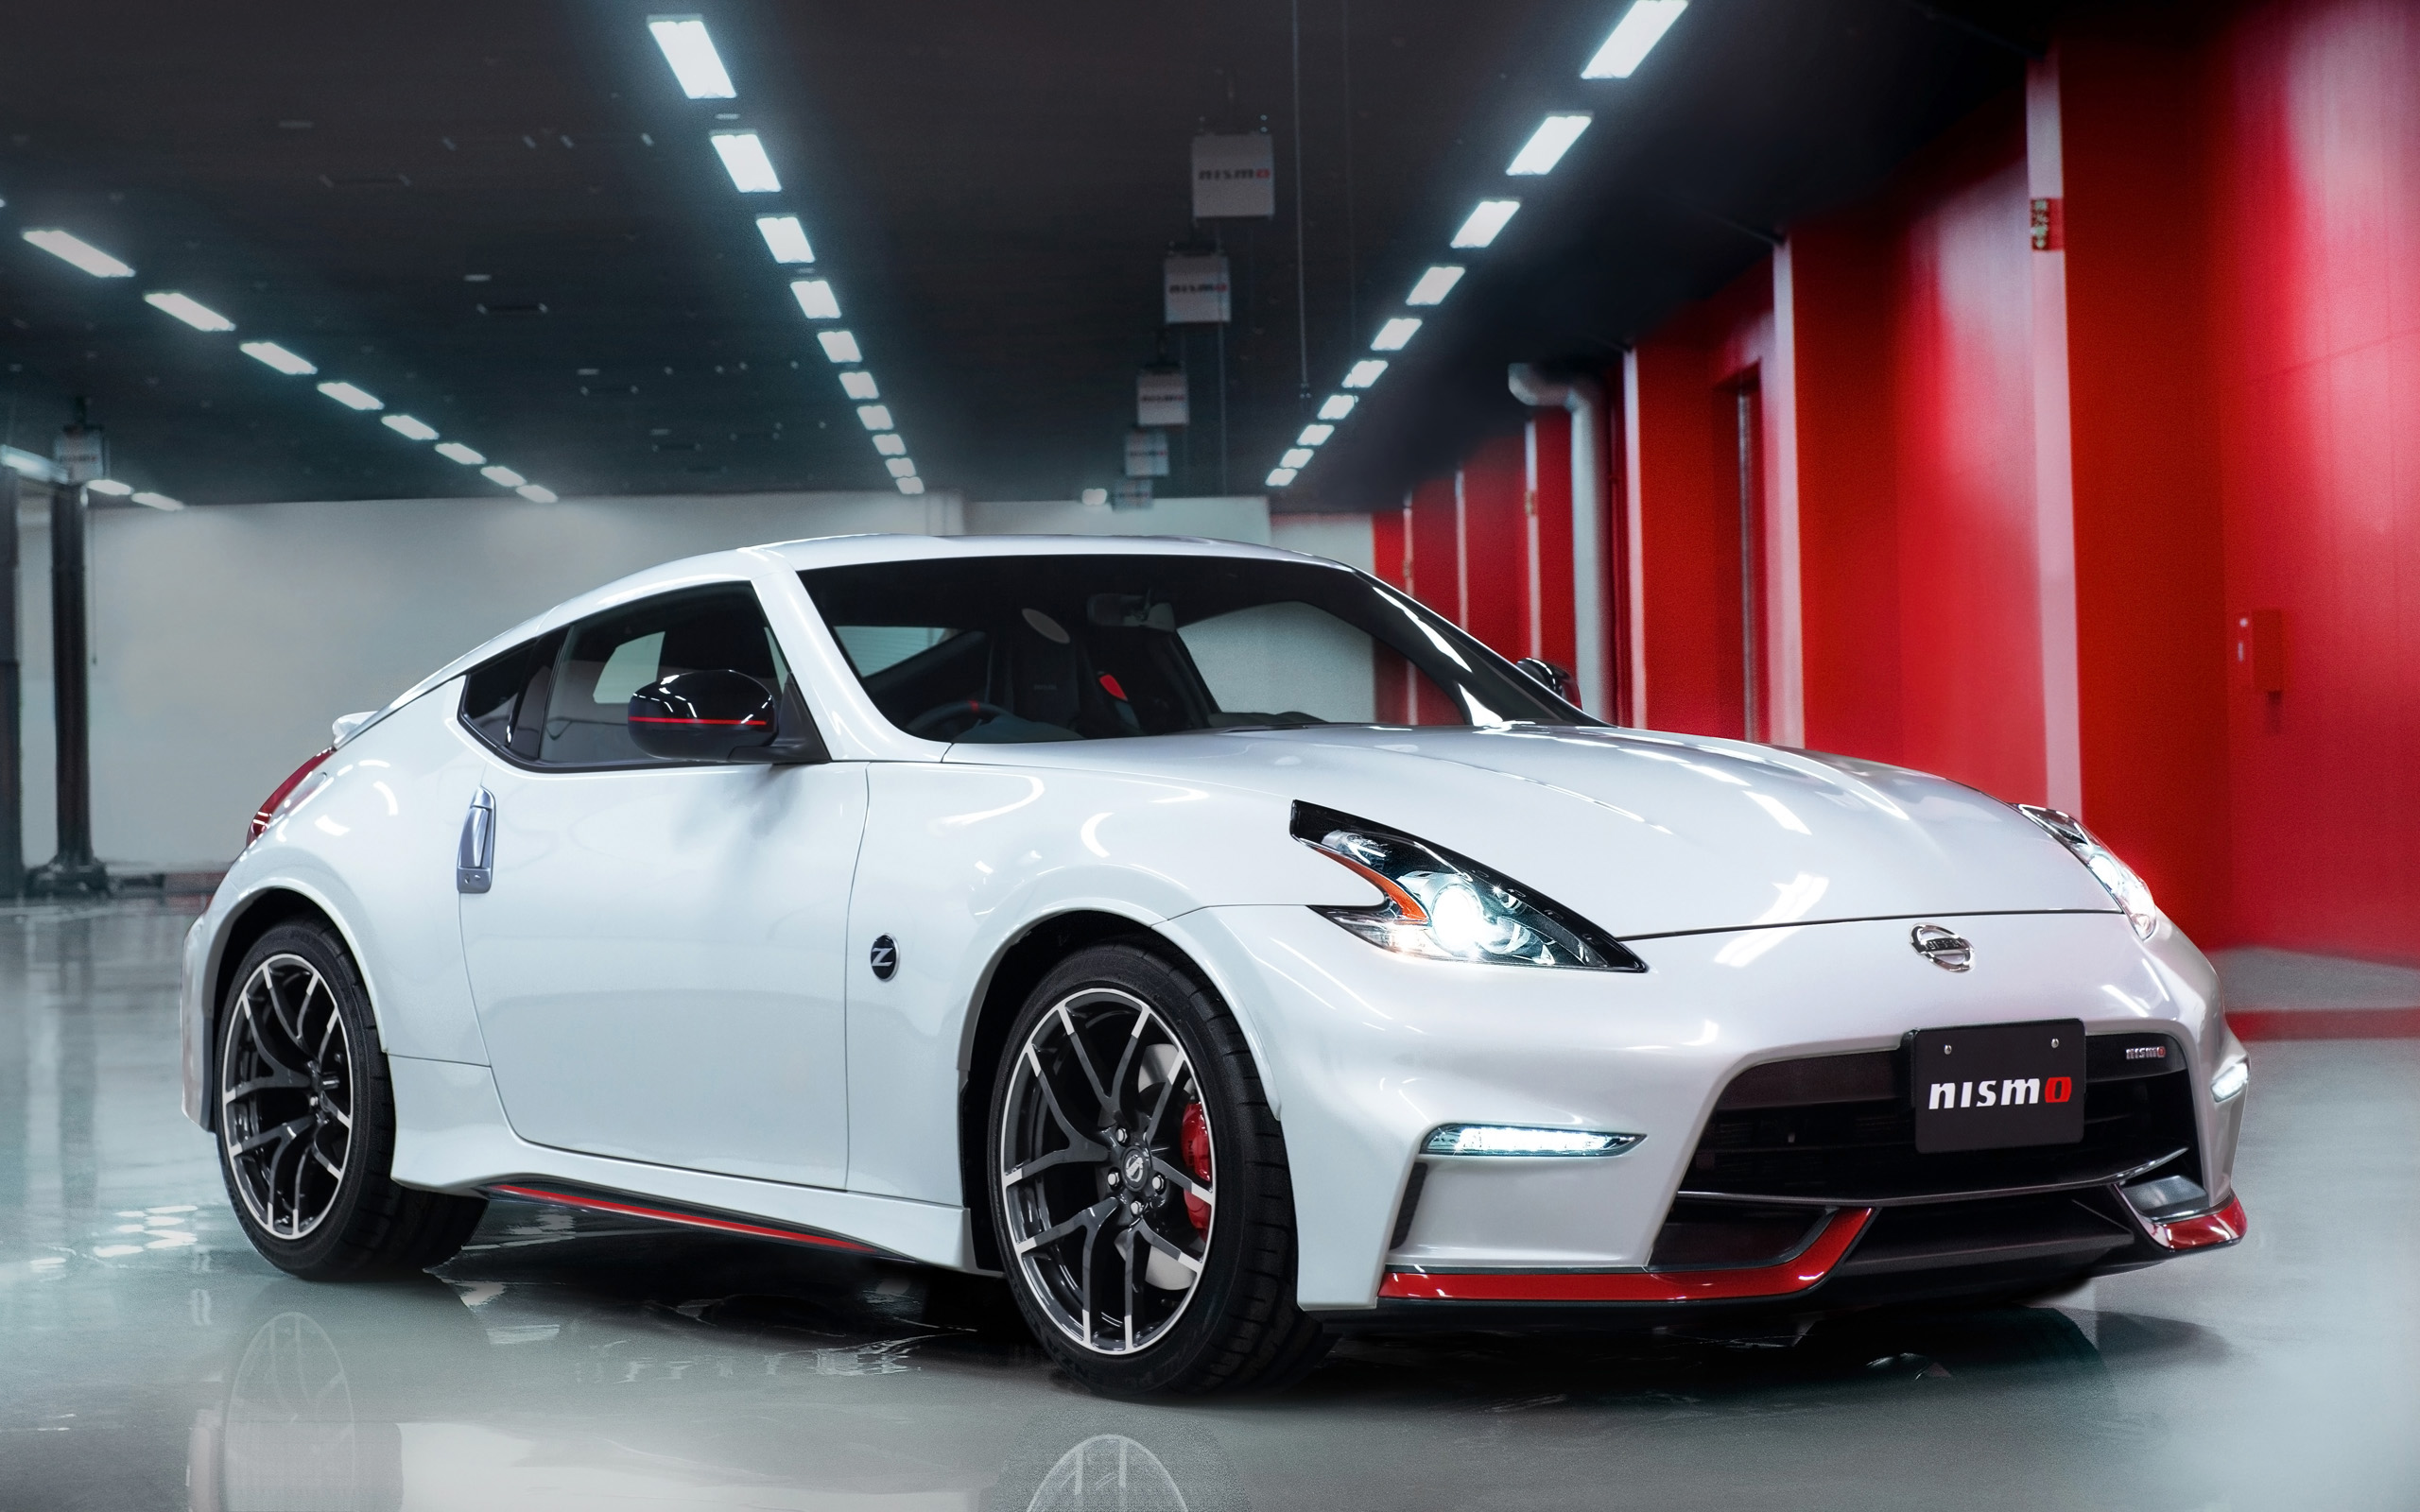 2015 Nissan 370Z NISMO 3 Wallpaper | HD Car Wallpapers